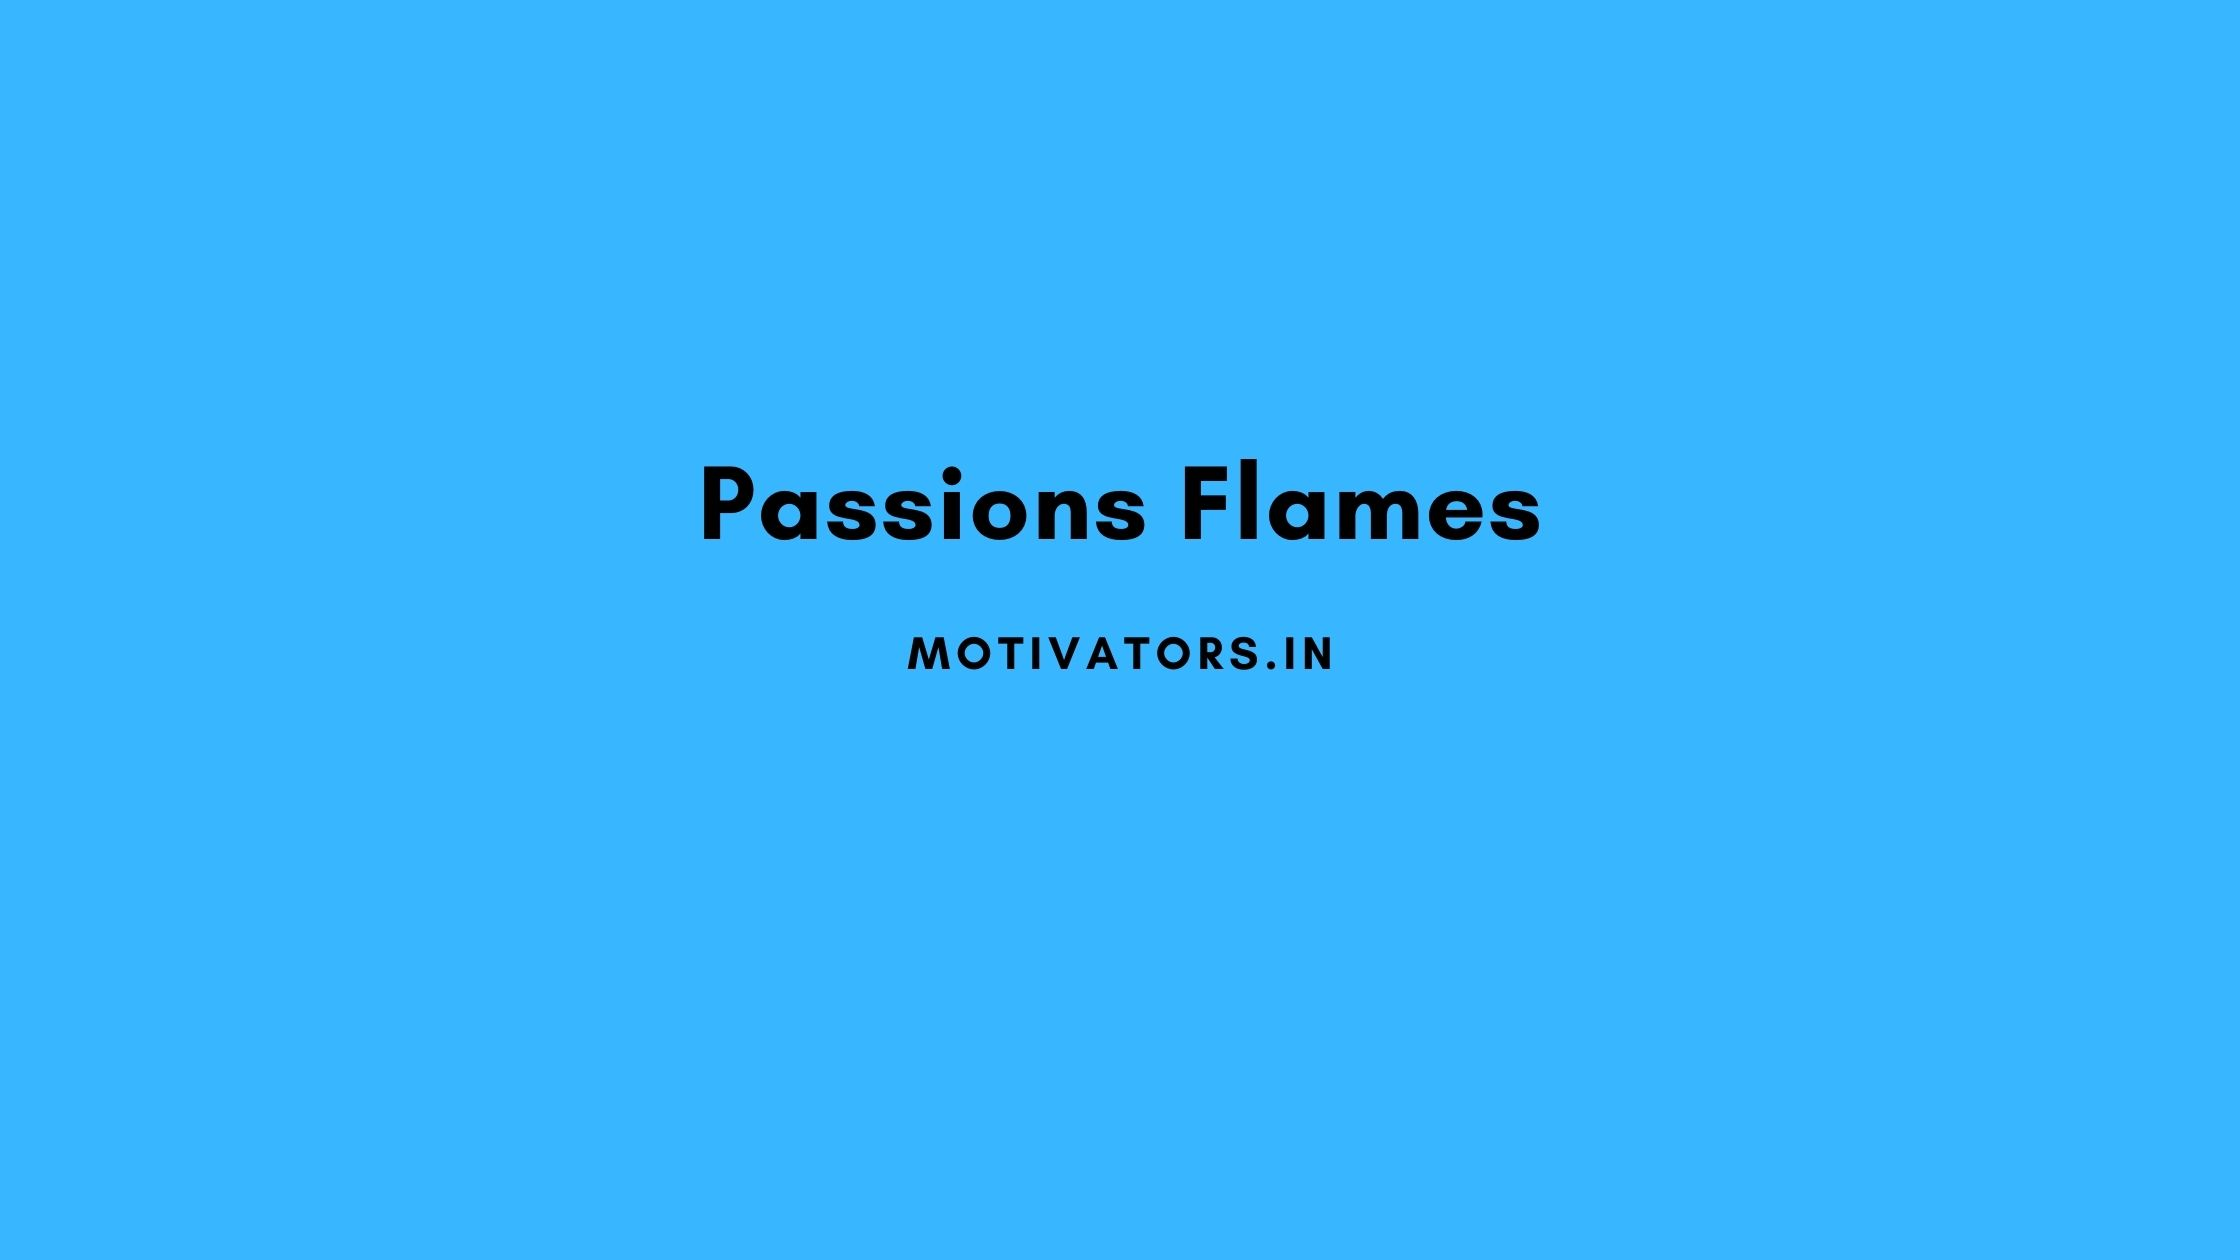 Passions Flames